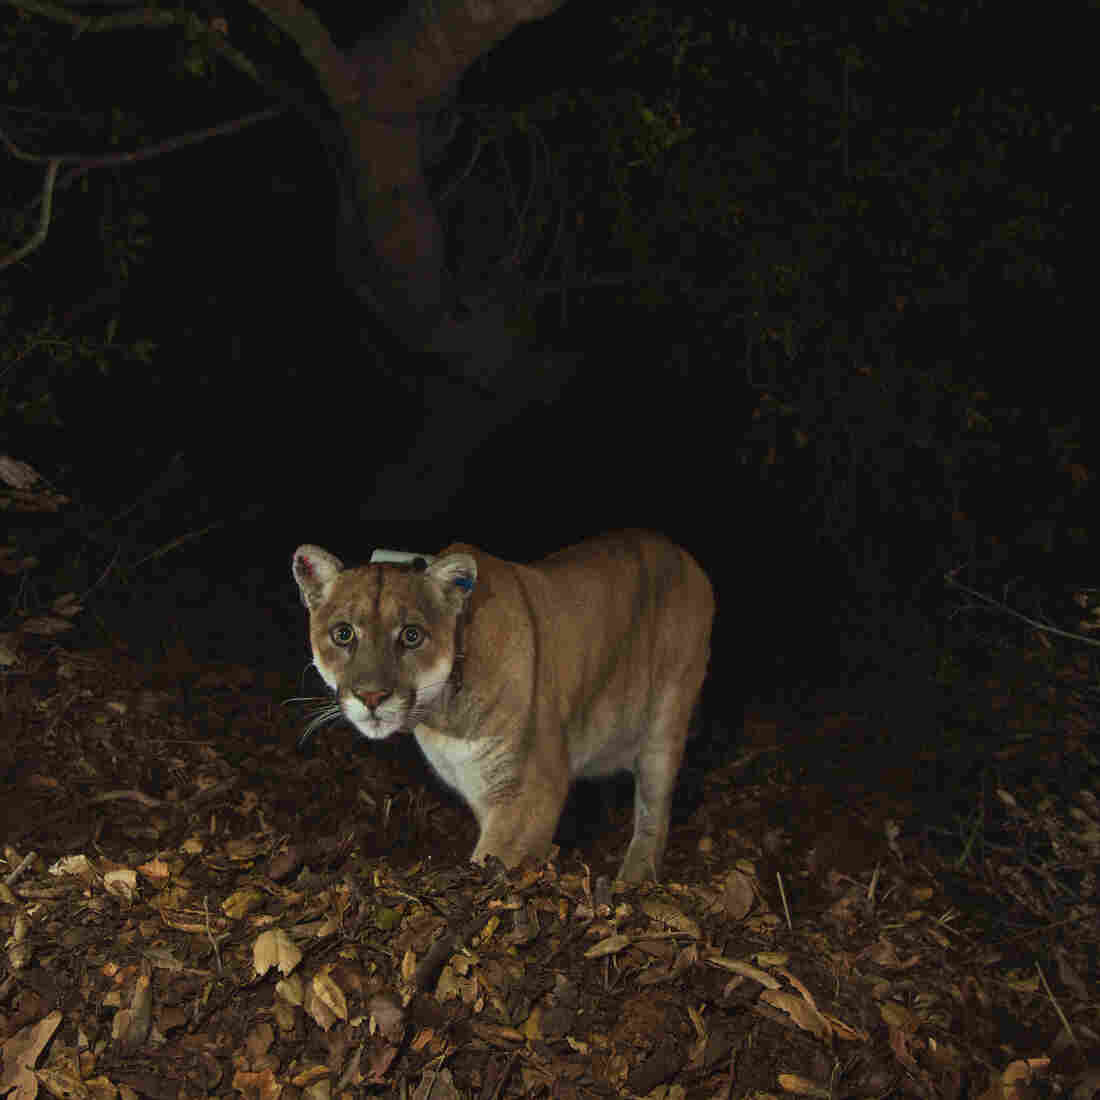 The mountain lion known as P-22 is seen in a photo from November after recovering from mange. He has been living in Griffith Park since at least February 2012.